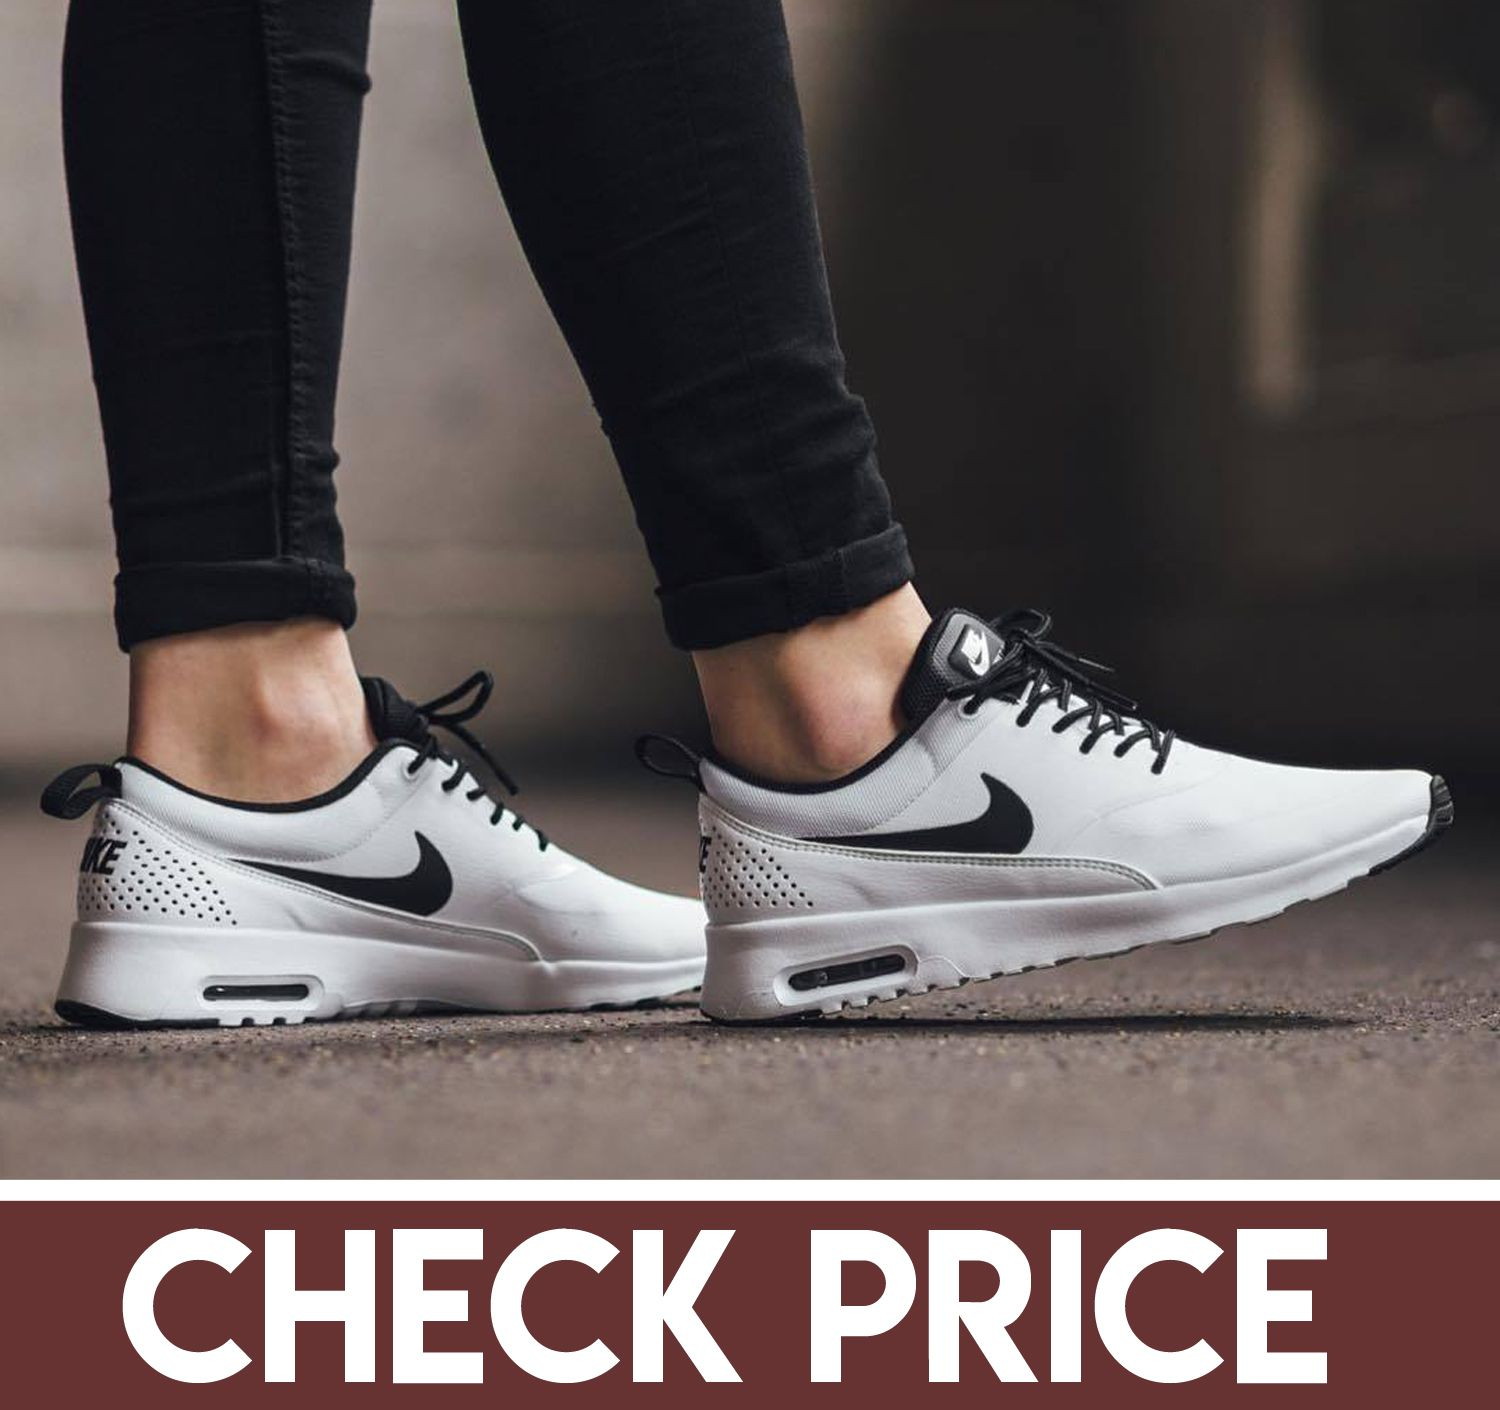 Nike offers the ever-fascinating Women s Air Max Thea running shoe and we  don t have a doubt about their legitimacy 5f84fa156